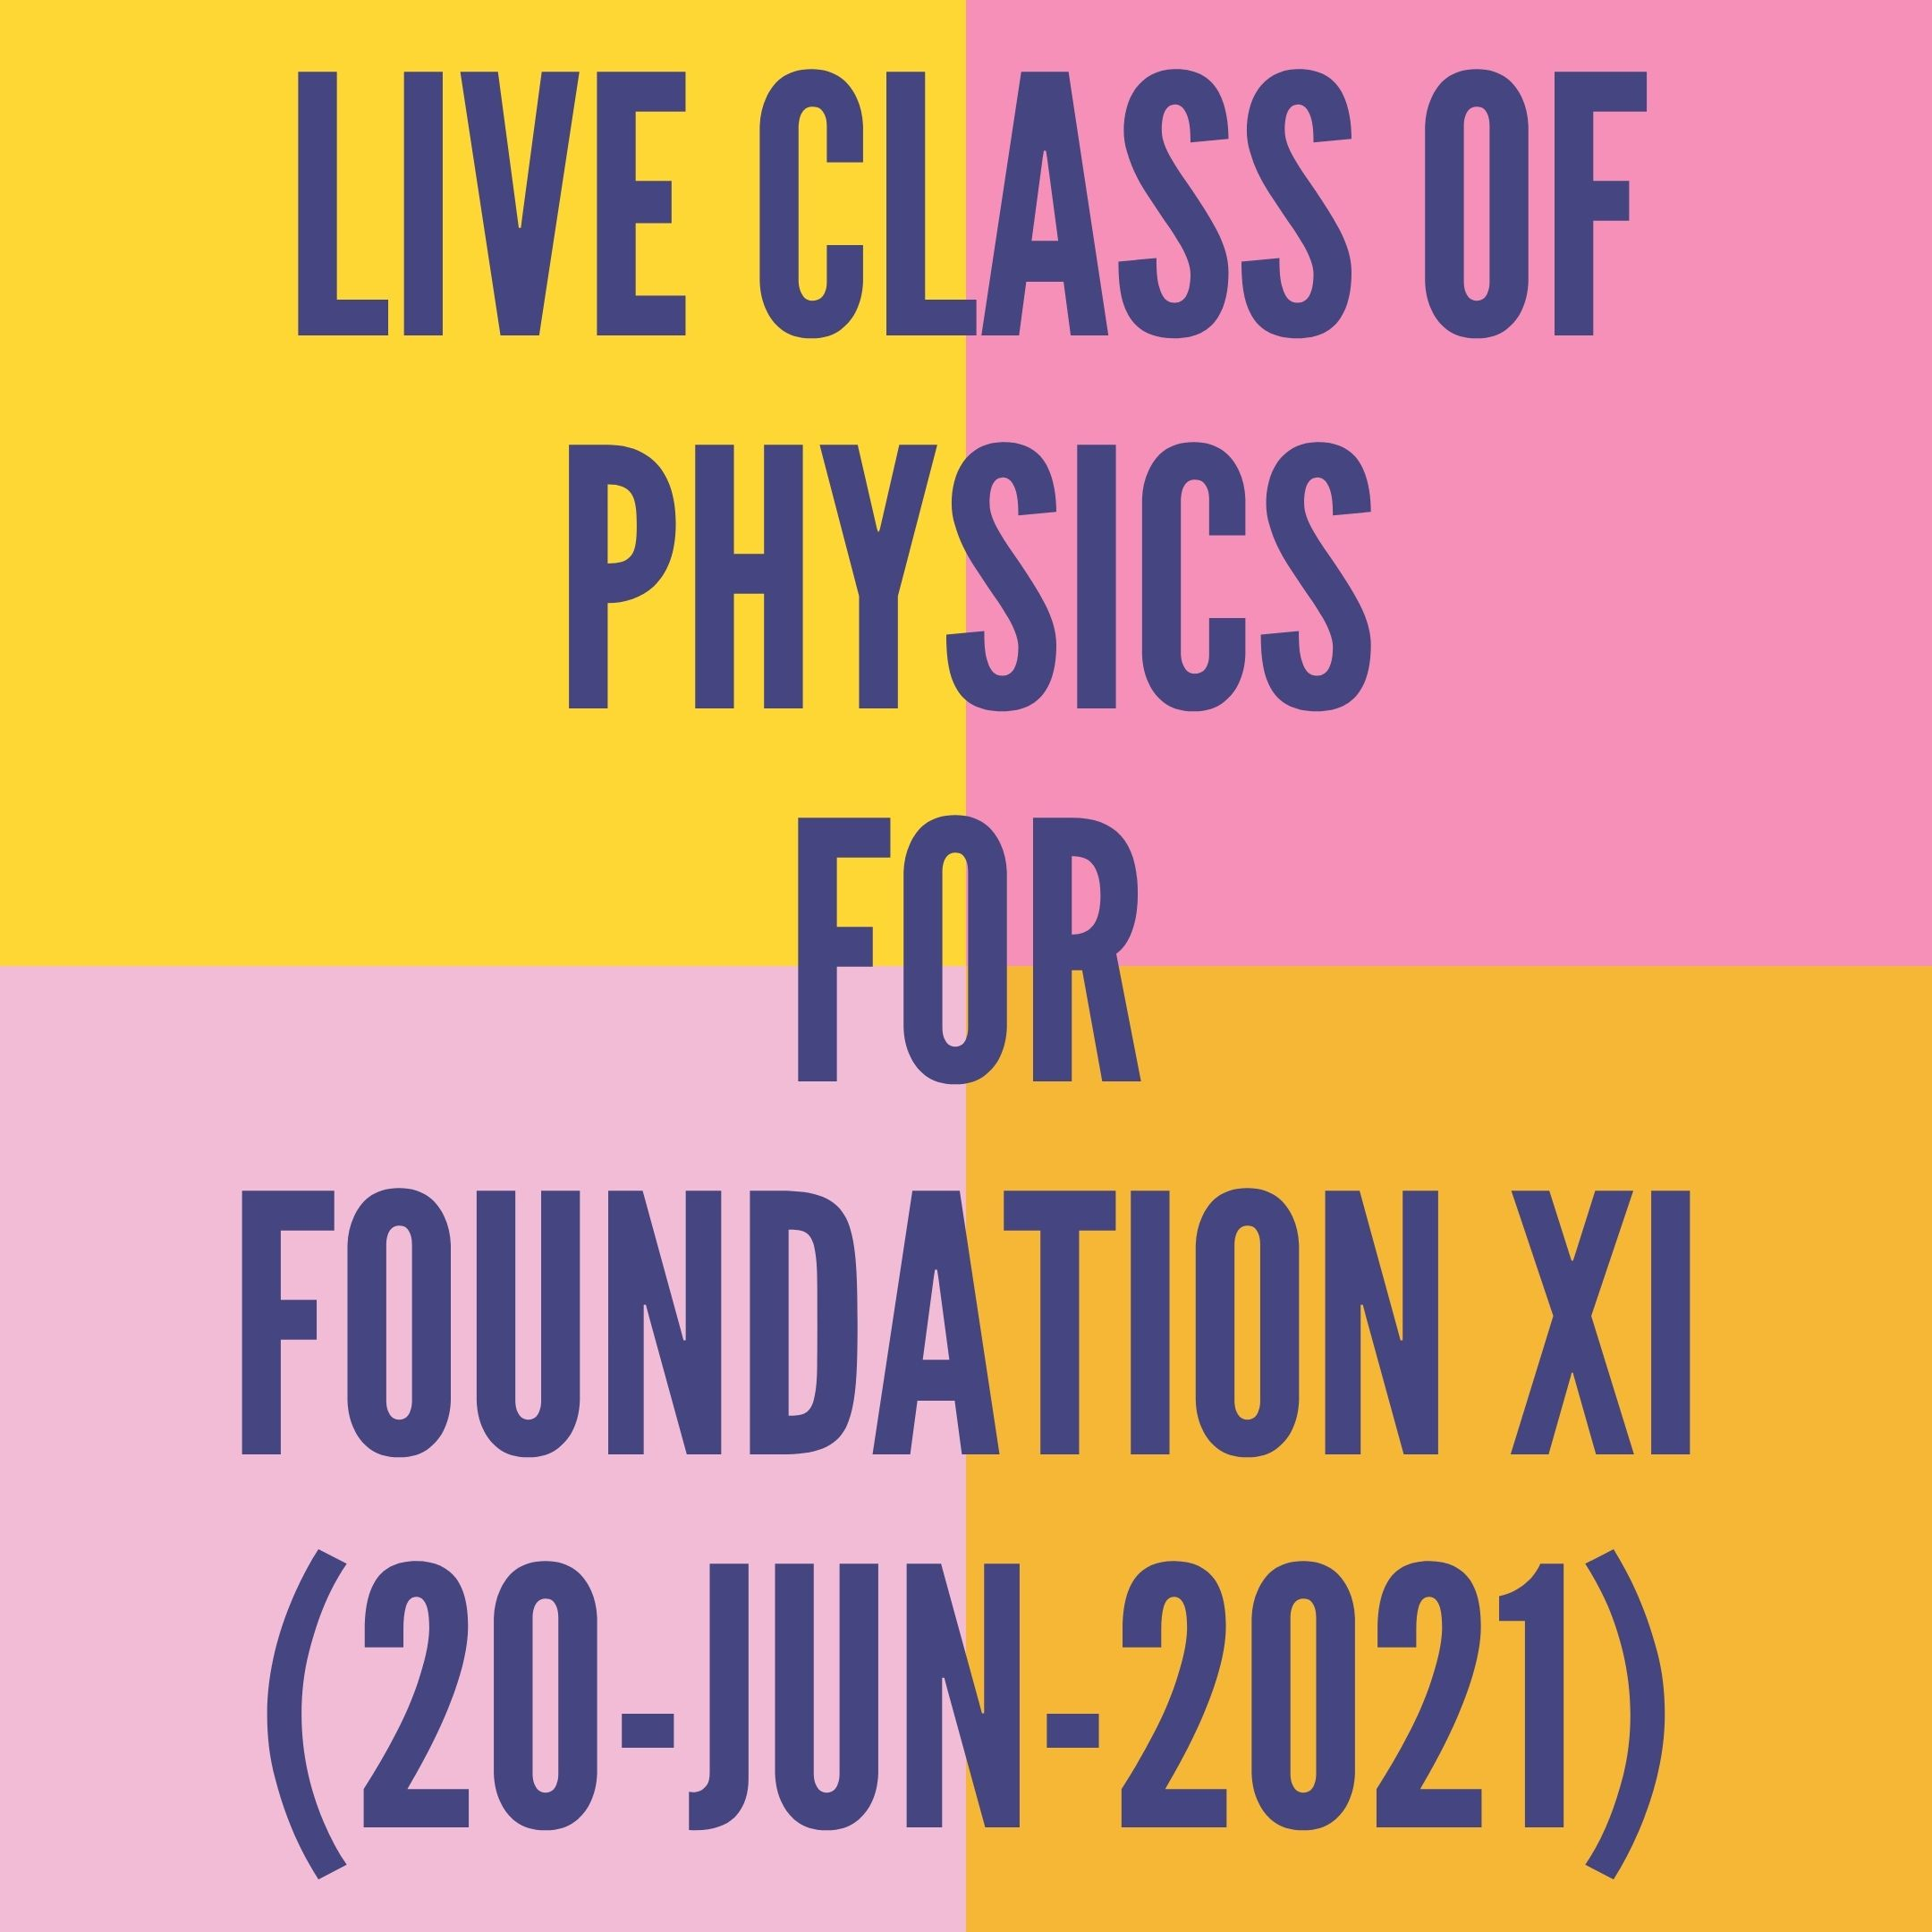 LIVE CLASS OF PHYSICS FOR FOUNDATION XI (20-JUN-2021) APPLIED MATHS